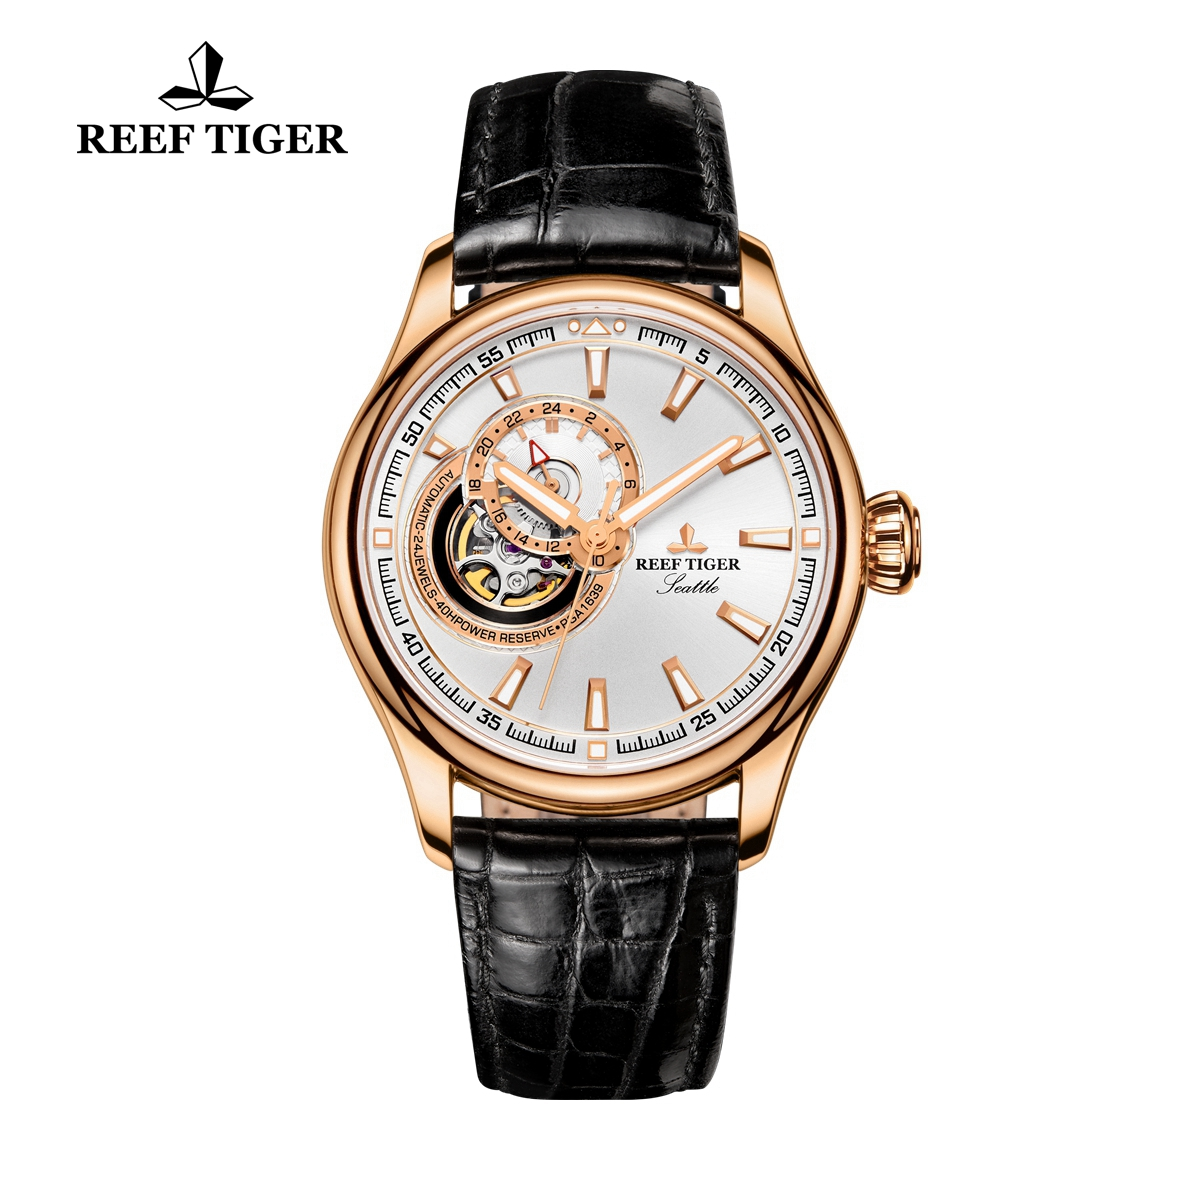 Reef Tiger Seattle Sea Hawk Dress Automatic Watch Rose Gold White Dial Black Leather Strap RGA1639-PWBS